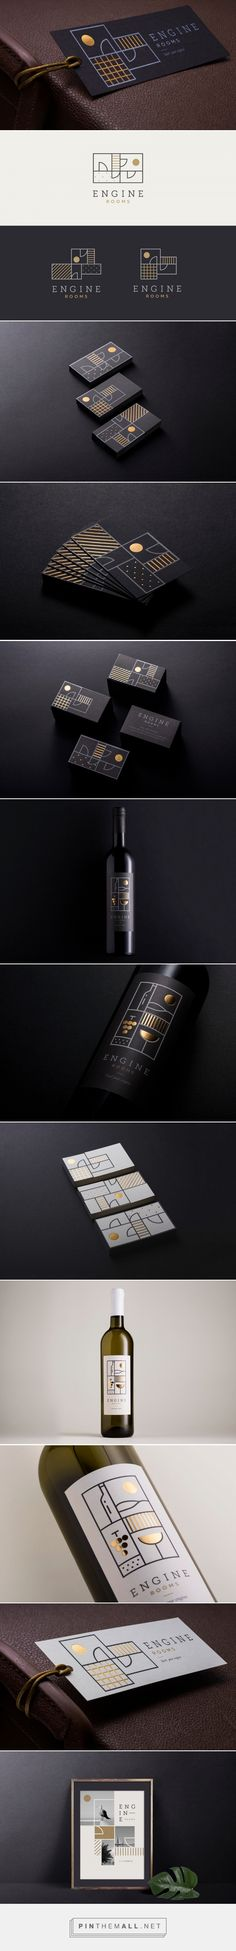 Engine Rooms wine packaging design by Mireldy - https://www.packagingoftheworld.com/2018/02/engine-rooms.html